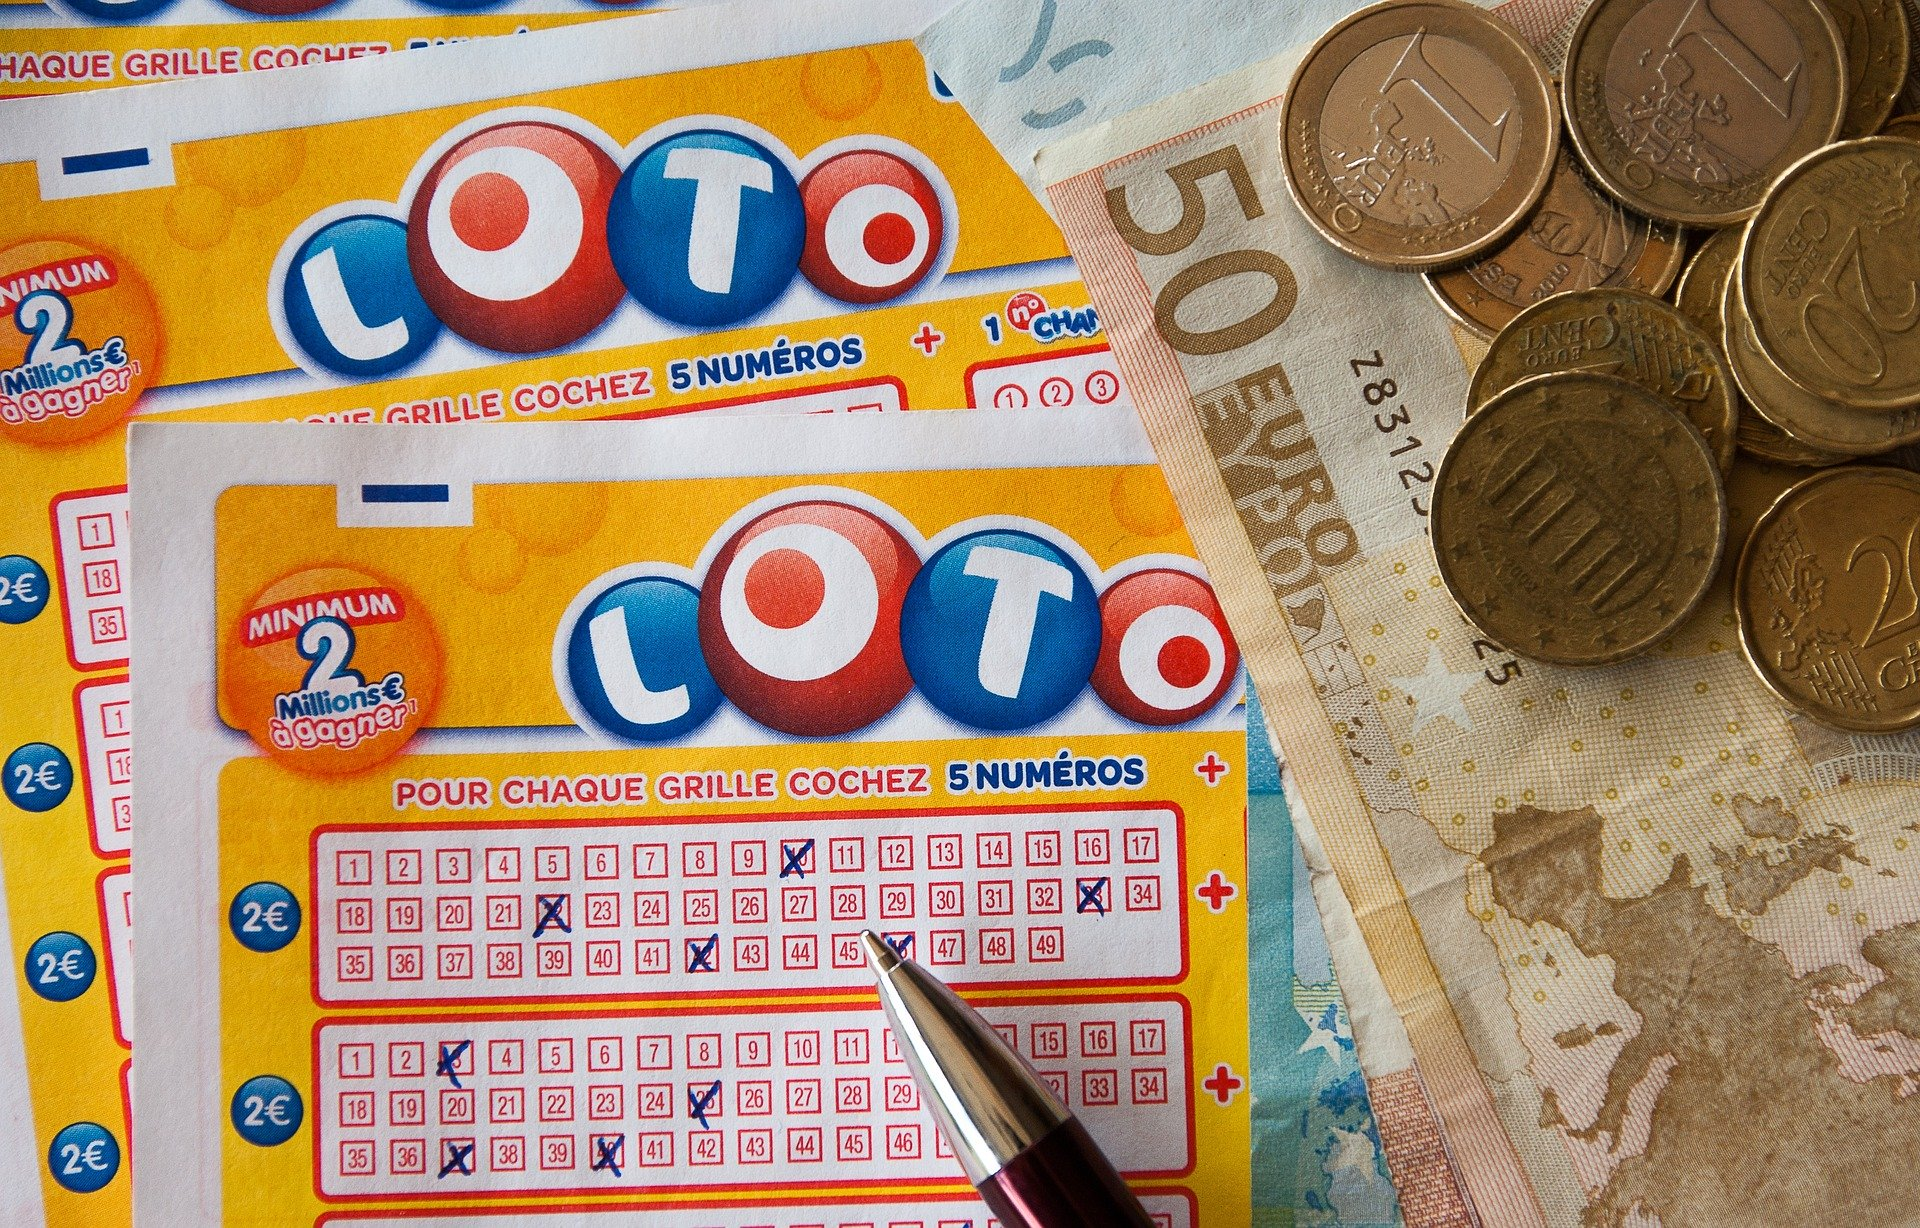 Chicken Dinner? Here's Some Things People Actually Did After Winning the Lottery